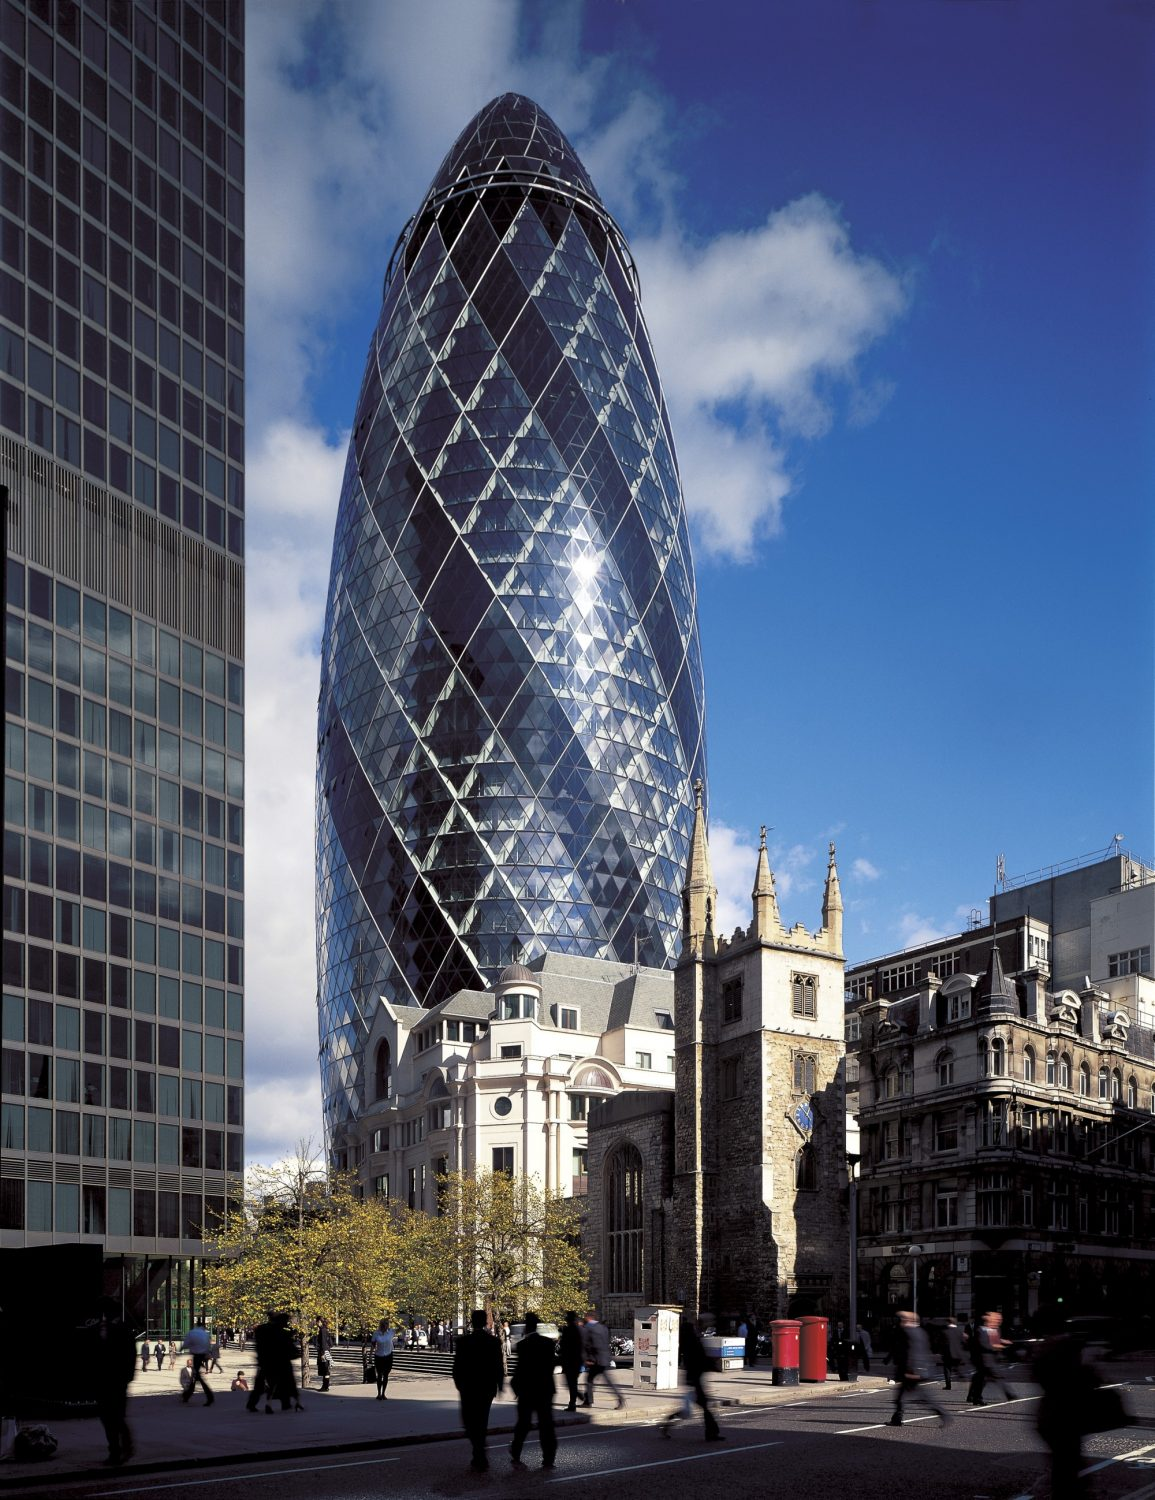 30 st mary axe The Gherkin IGS Magazine